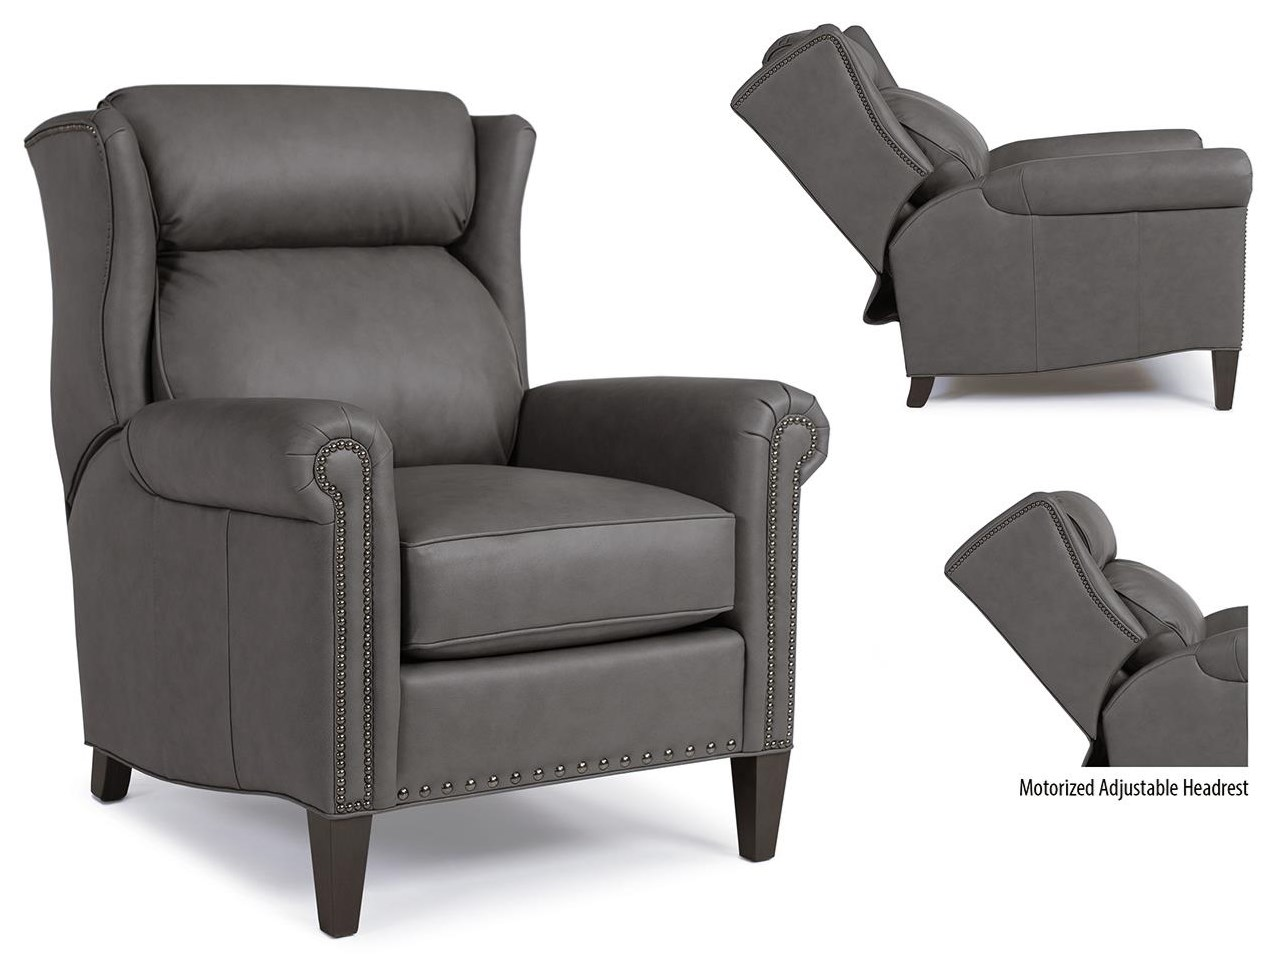 537 Tiltback Chair by Smith Brothers at Johnny Janosik